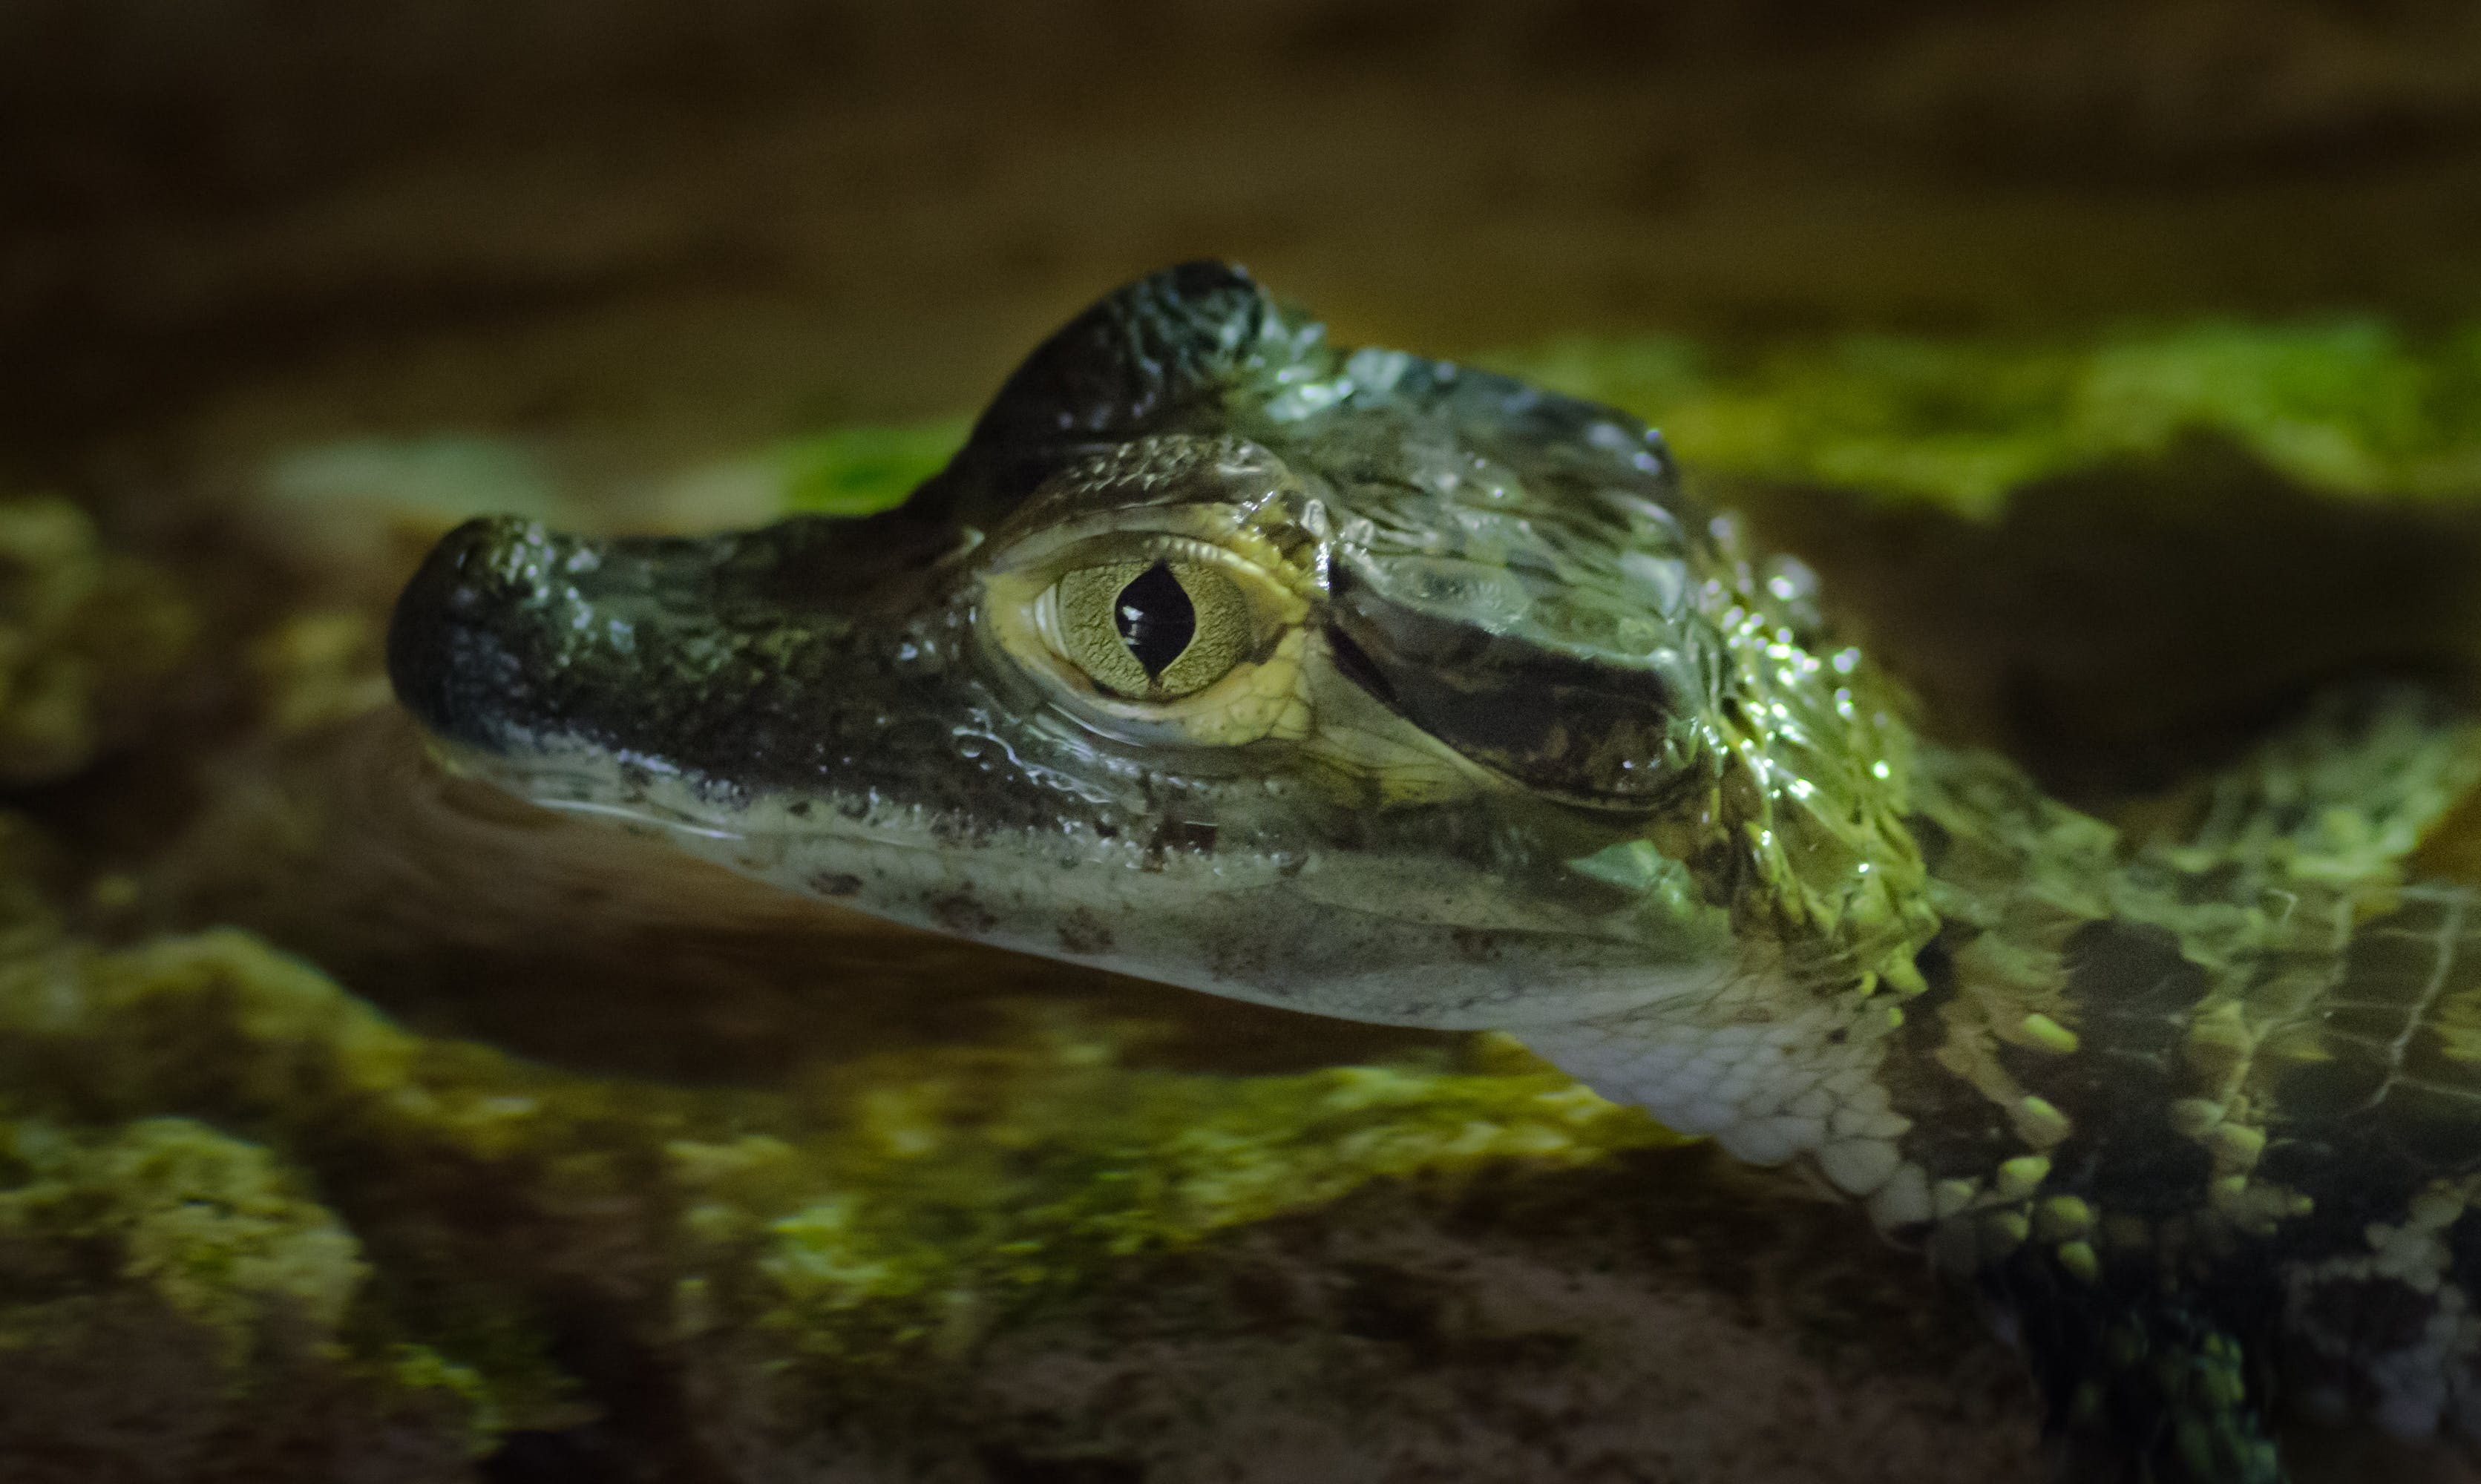 Close-up Photography of Baby Alligator